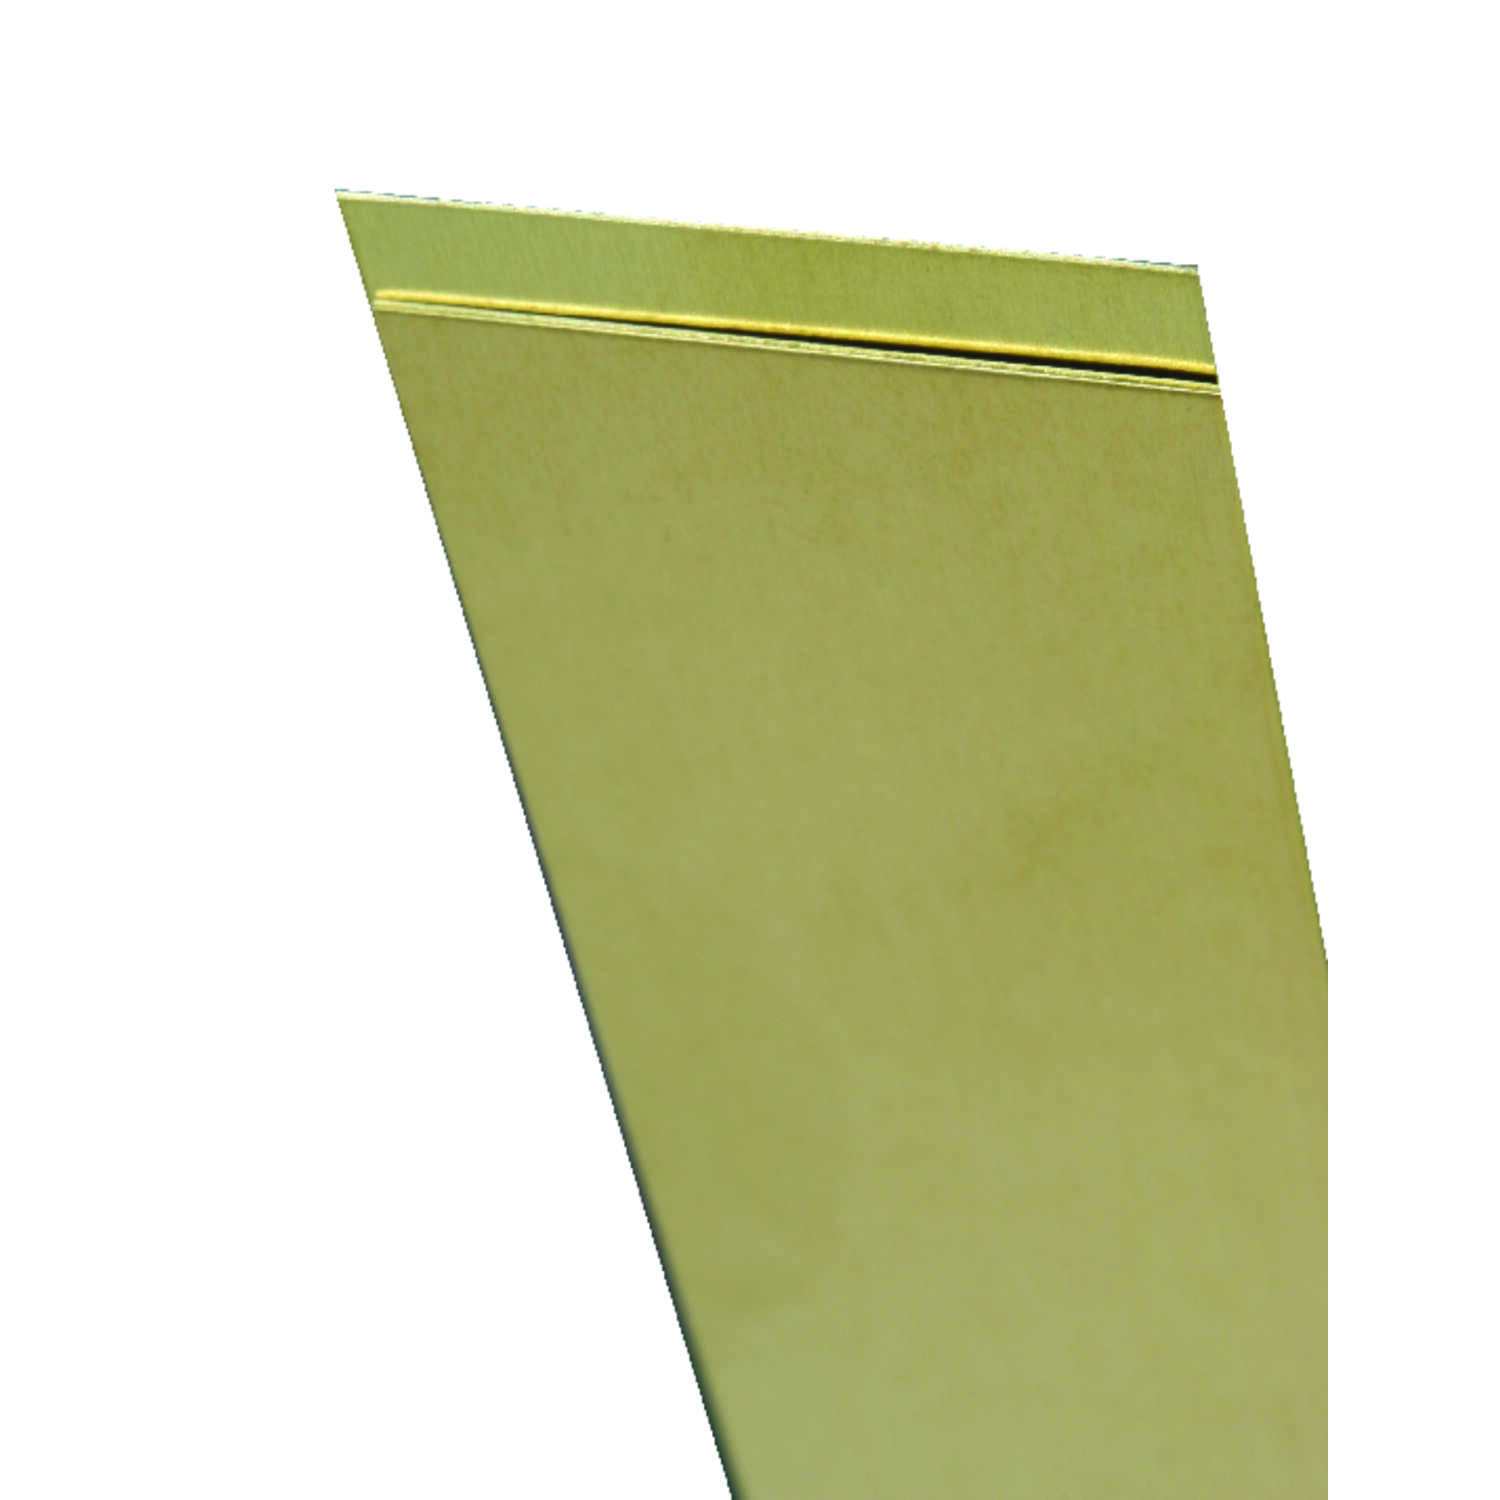 K&S 0.032 in. x 3/4 in. W x 12 in. L Brass Metal Strip